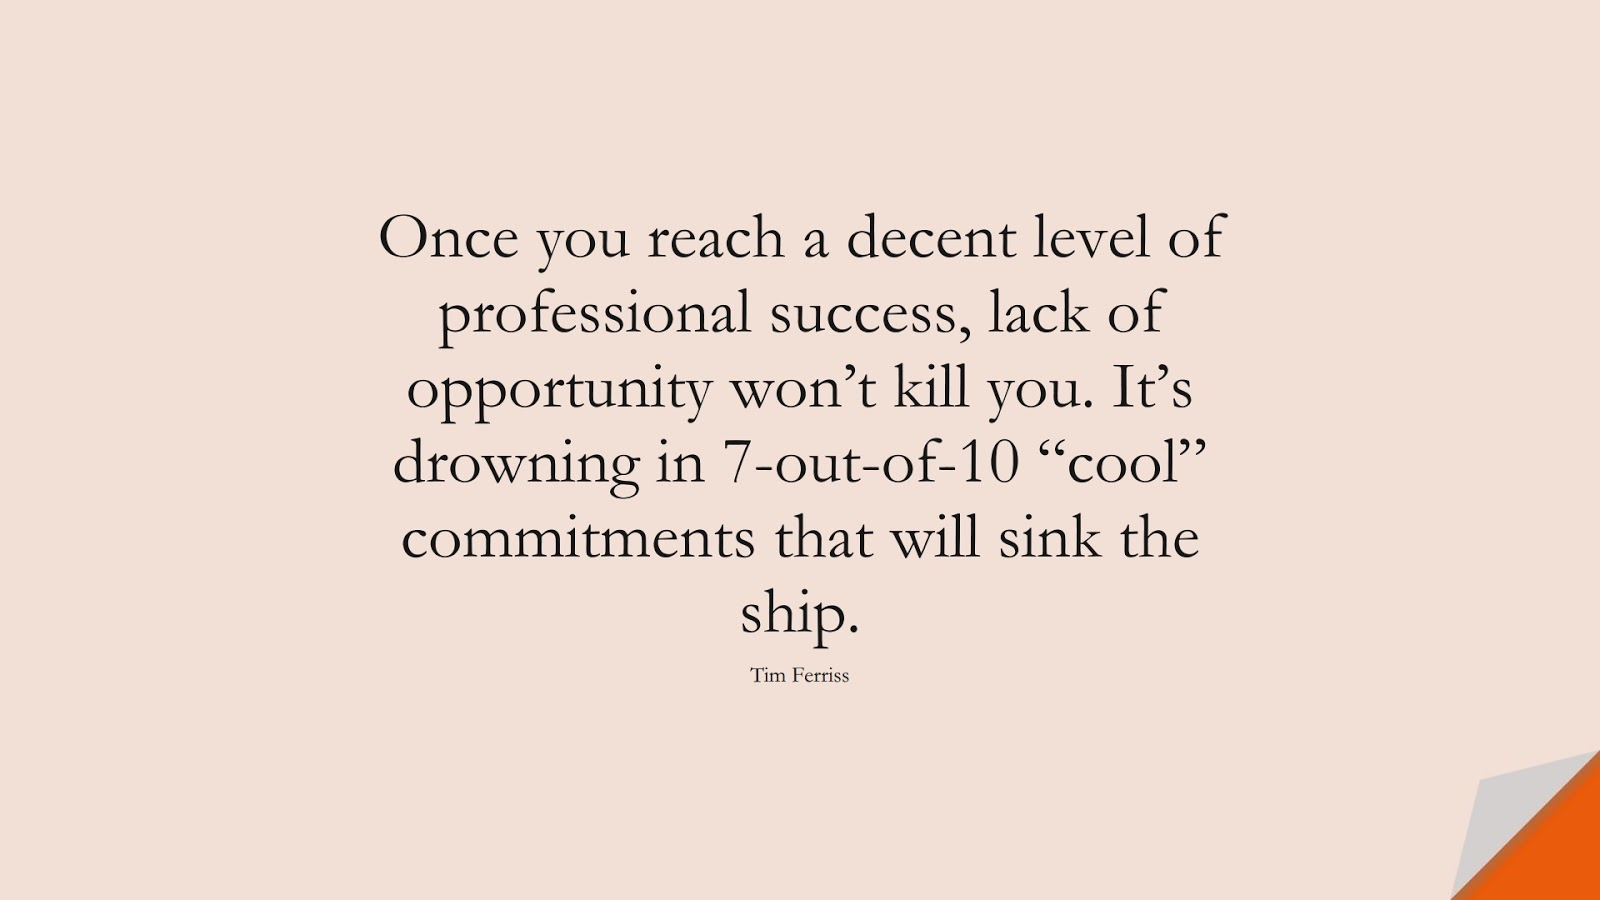 """Once you reach a decent level of professional success, lack of opportunity won't kill you. It's drowning in 7-out-of-10 """"cool"""" commitments that will sink the ship. (Tim Ferriss);  #TimFerrissQuotes"""